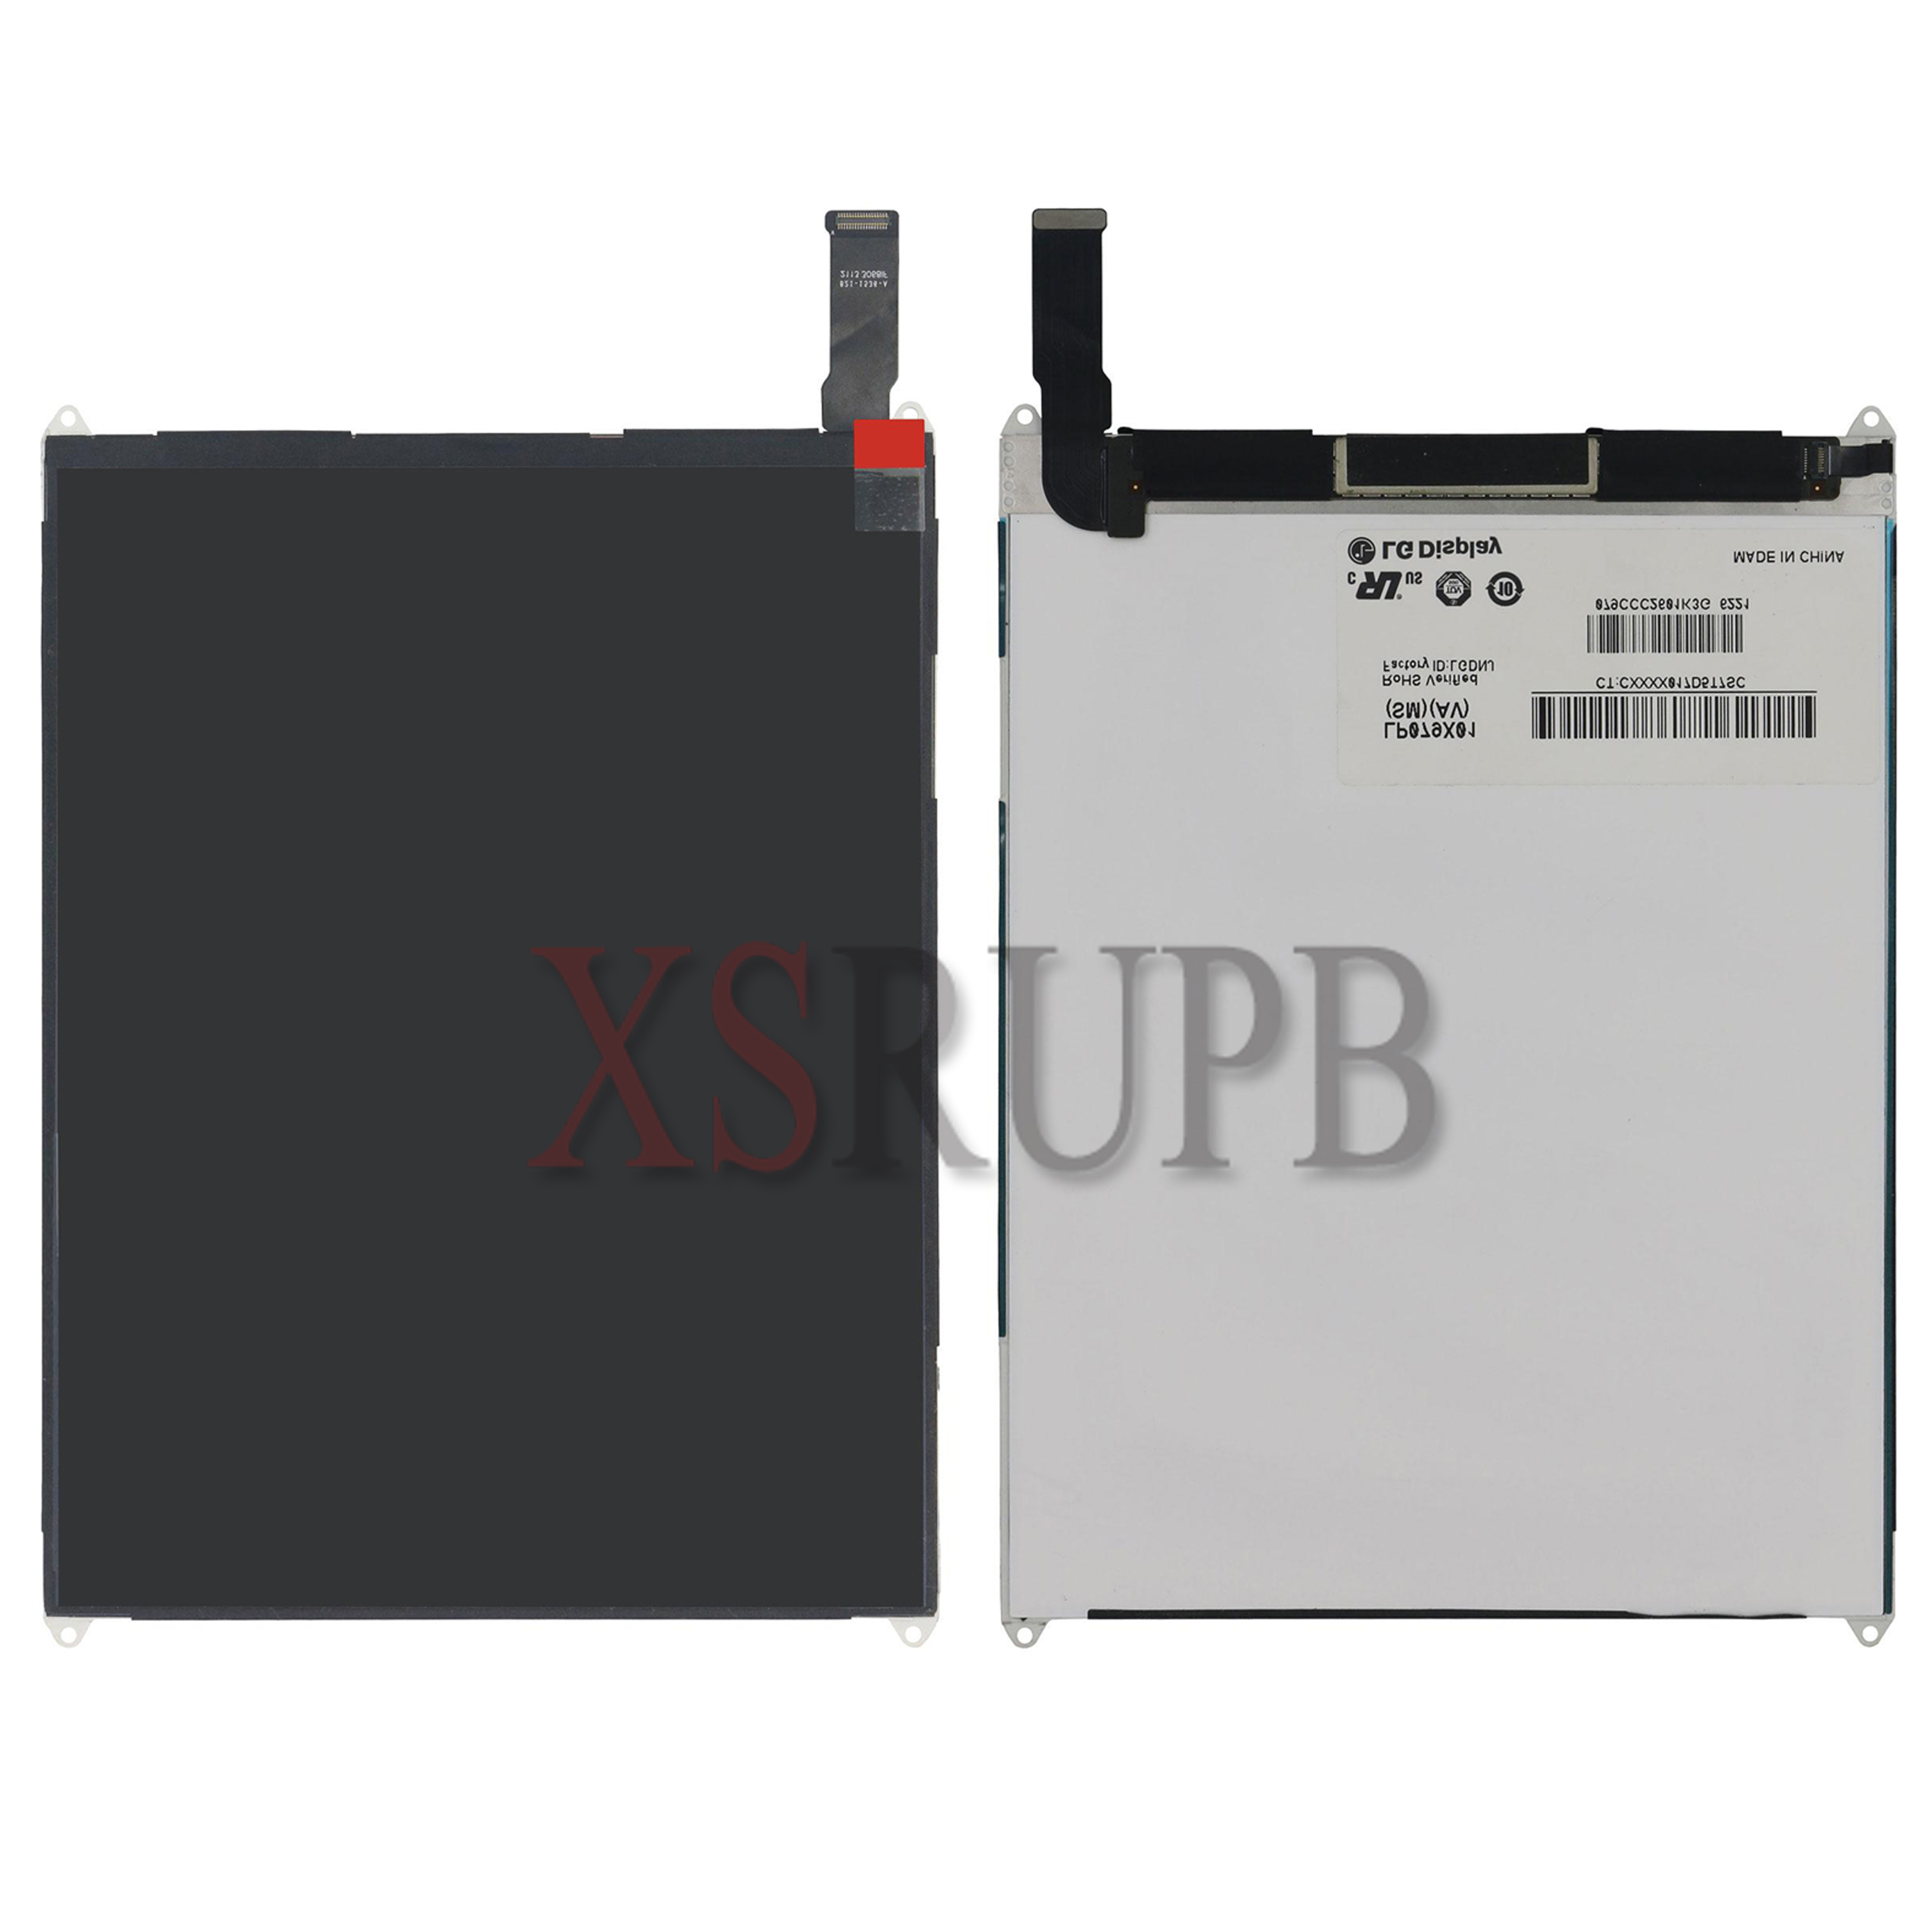 ORIGINAL 7.85 IPS LCD Screen for teXet X-pad SHINE 8.1 3G / TM-7868 1024x768 LCD Display Panel Replacement factory original ips lcd screen 7 85 for iru pad master m7801g internal lcd display panel 1024x768 replacement